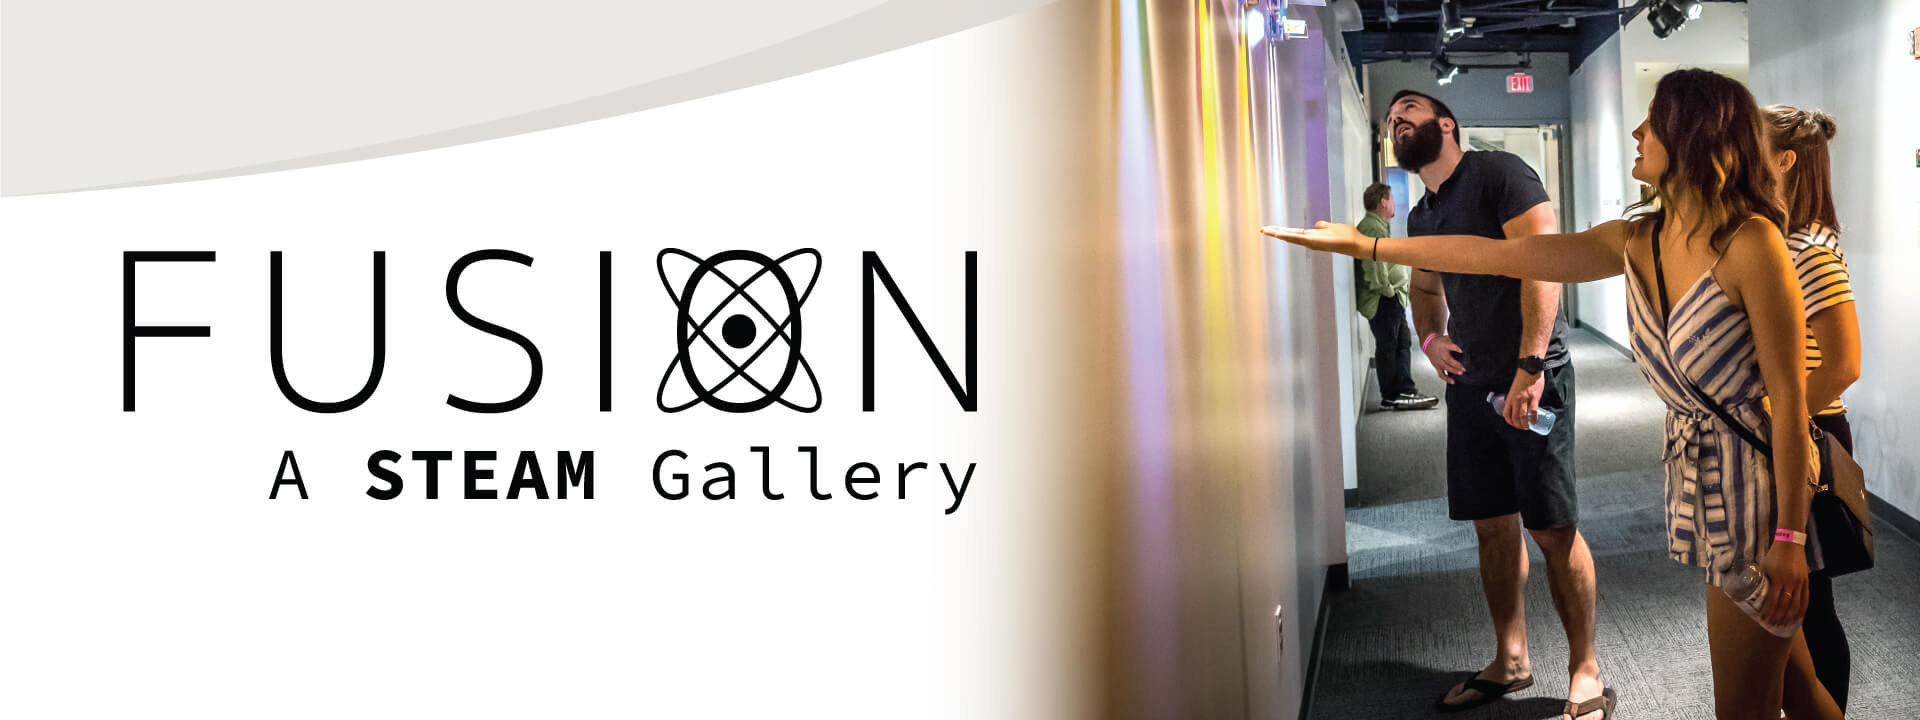 Fusion Gallery logo and photo of three young adults interacting with light beams from artwork piece.